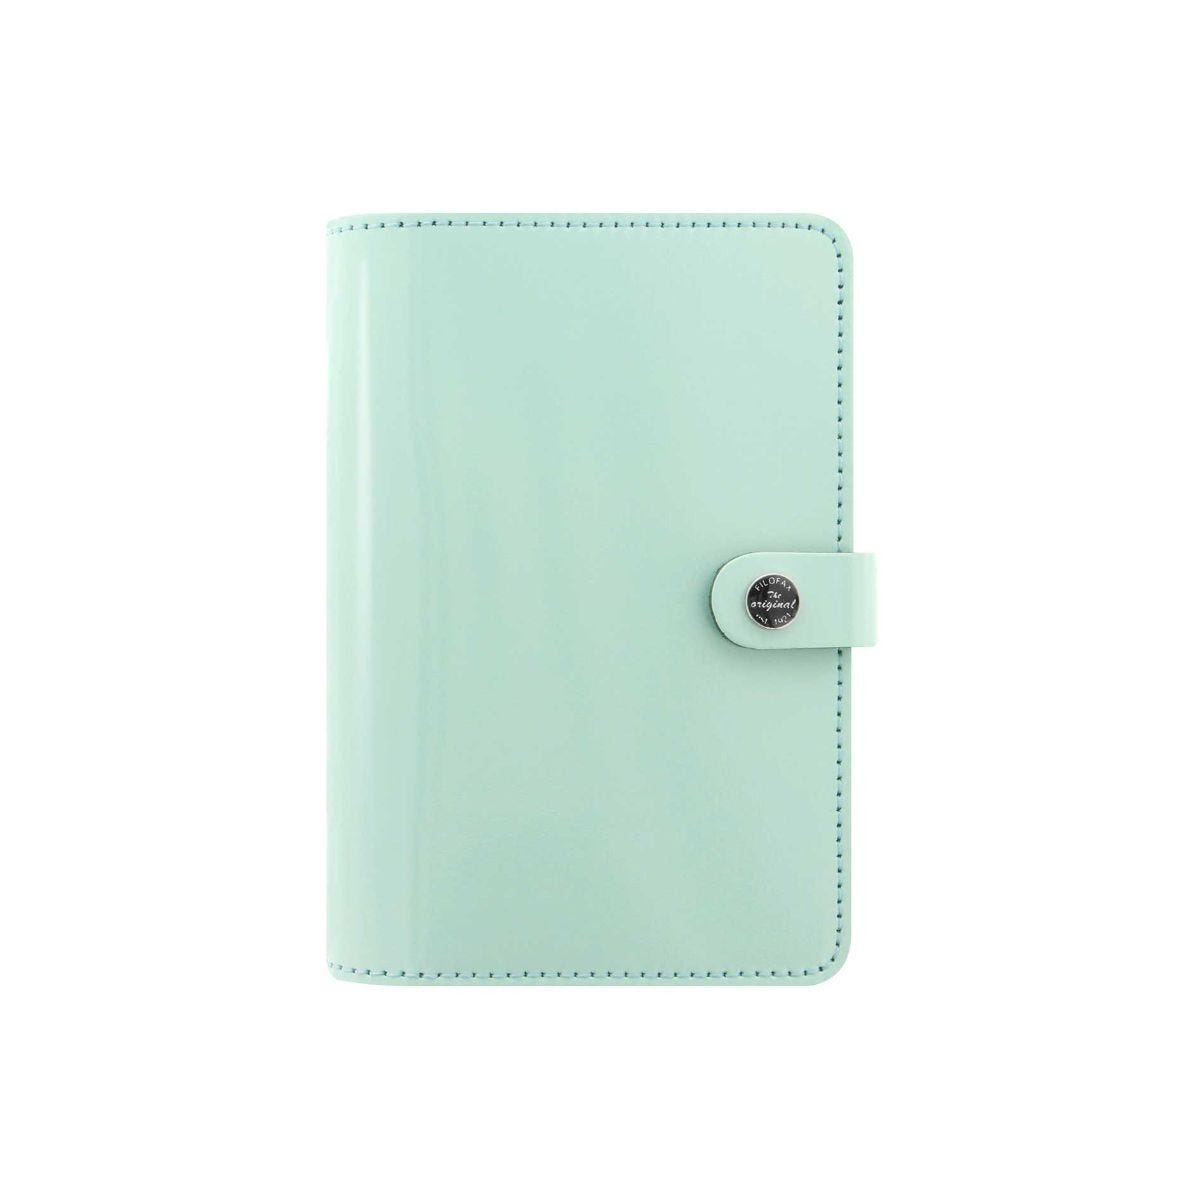 Filofax Personal The Original Organiser Duck Egg Blue